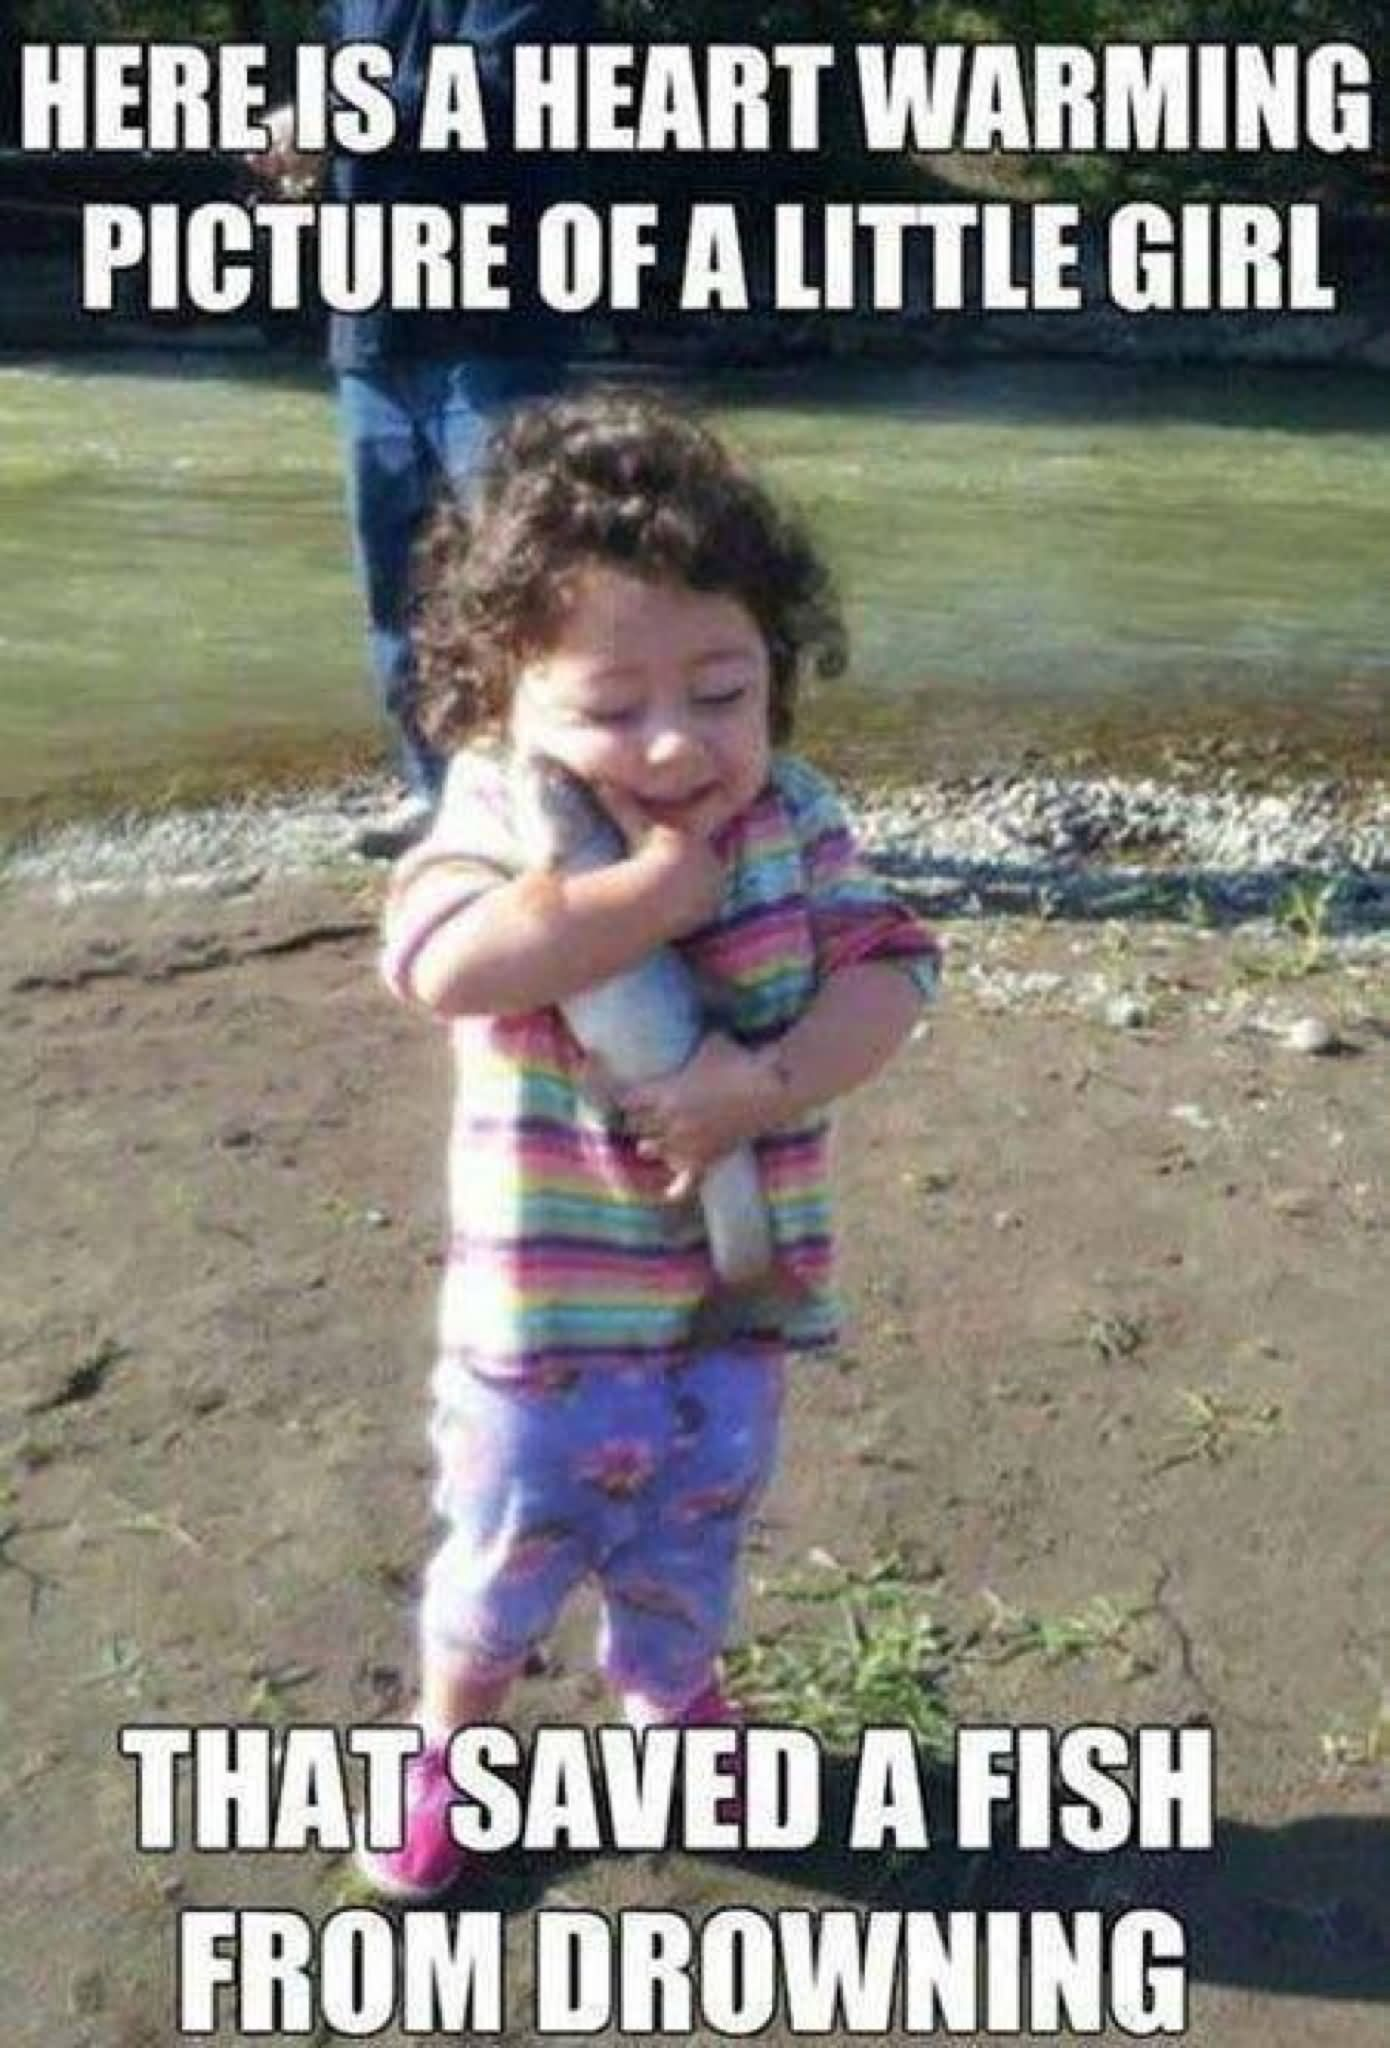 Funny little girl saved a fish from drowning meme image